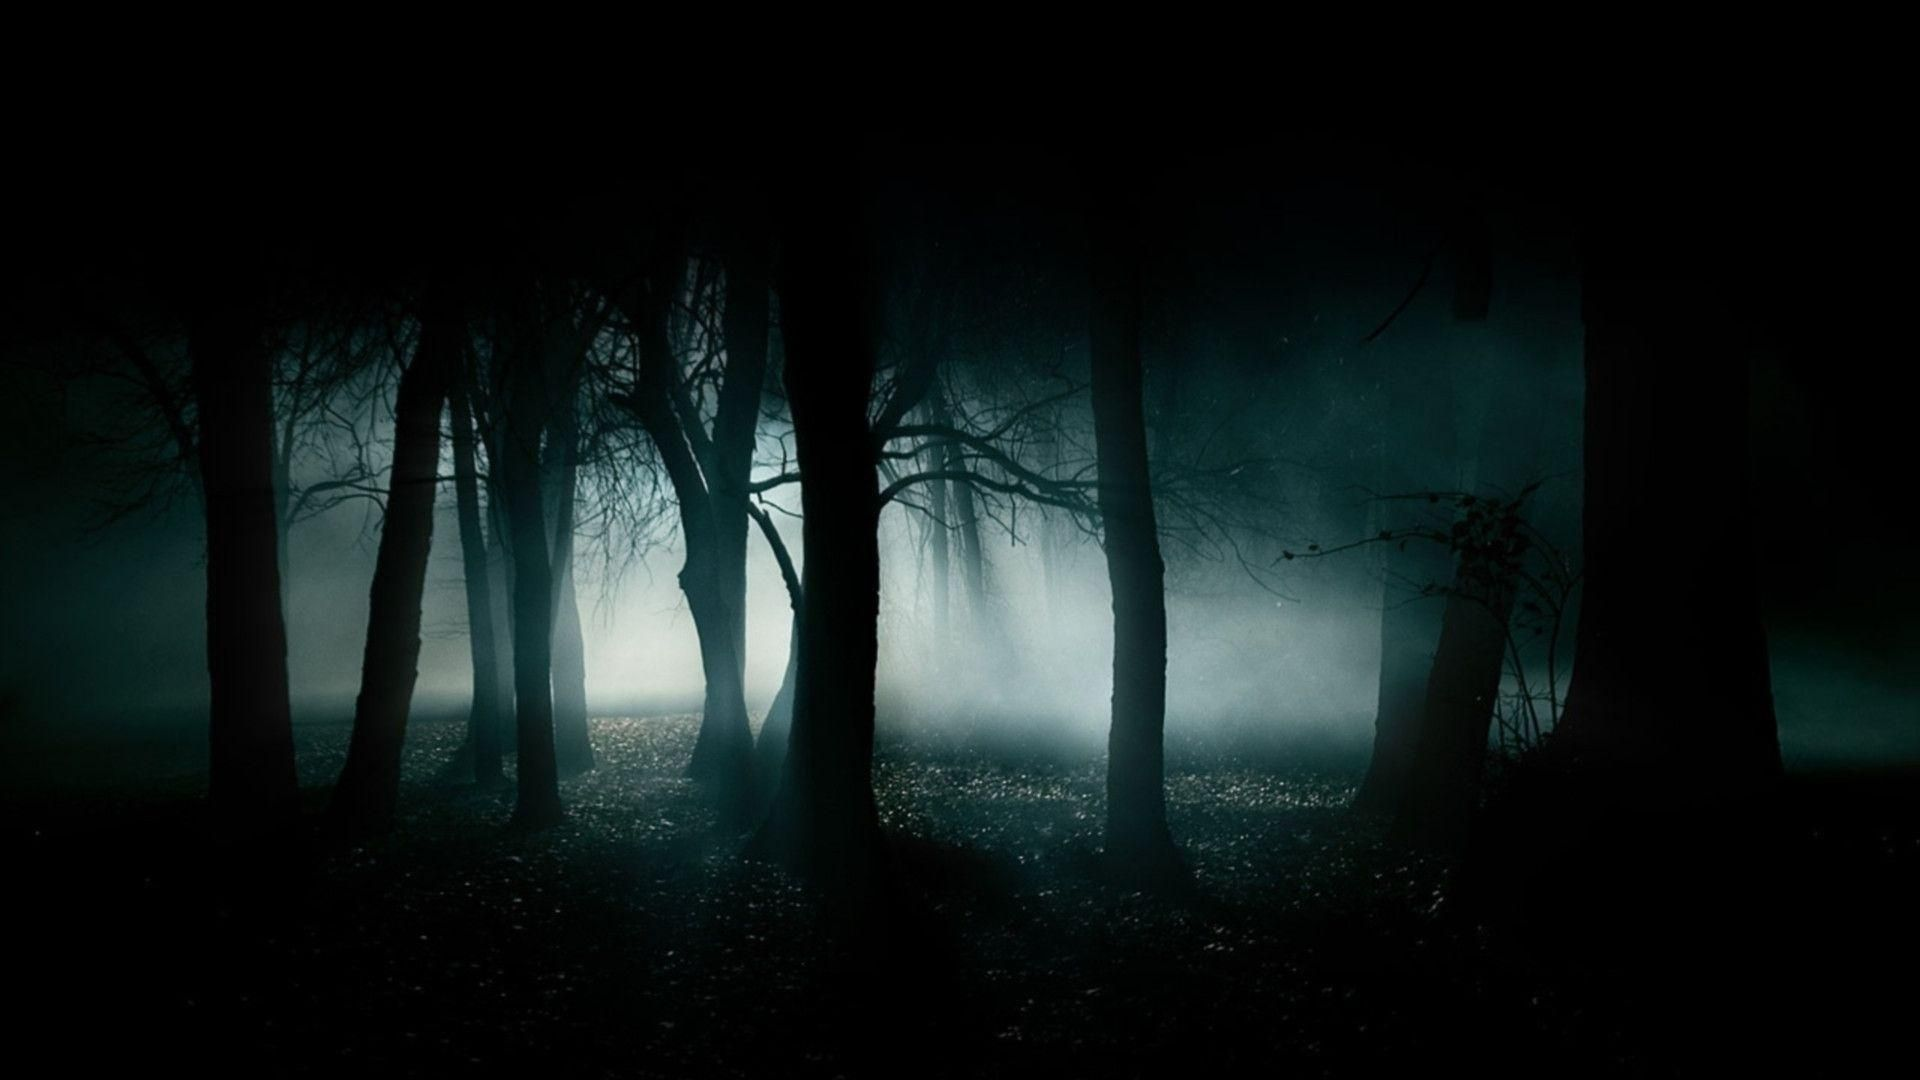 10 New Dark Wallpapers Hd 1920x1080 Full Hd 1080p For Pc Desktop Night Forest Dark Forest Forest Wallpaper